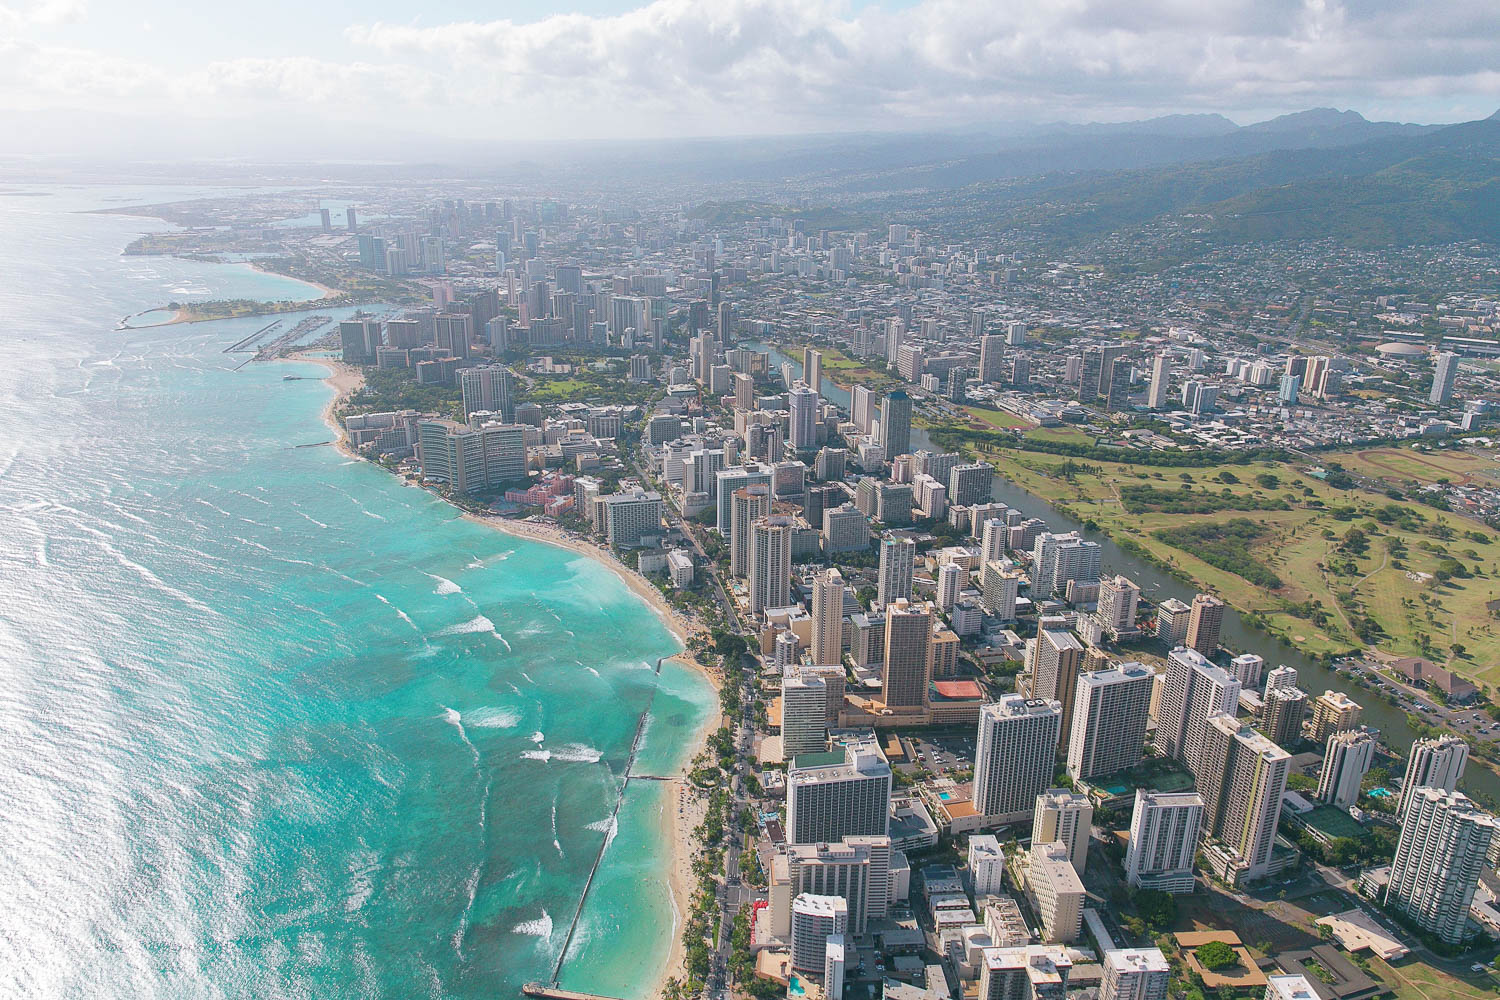 Oahu's Waikiki as seen from a helicopter tour